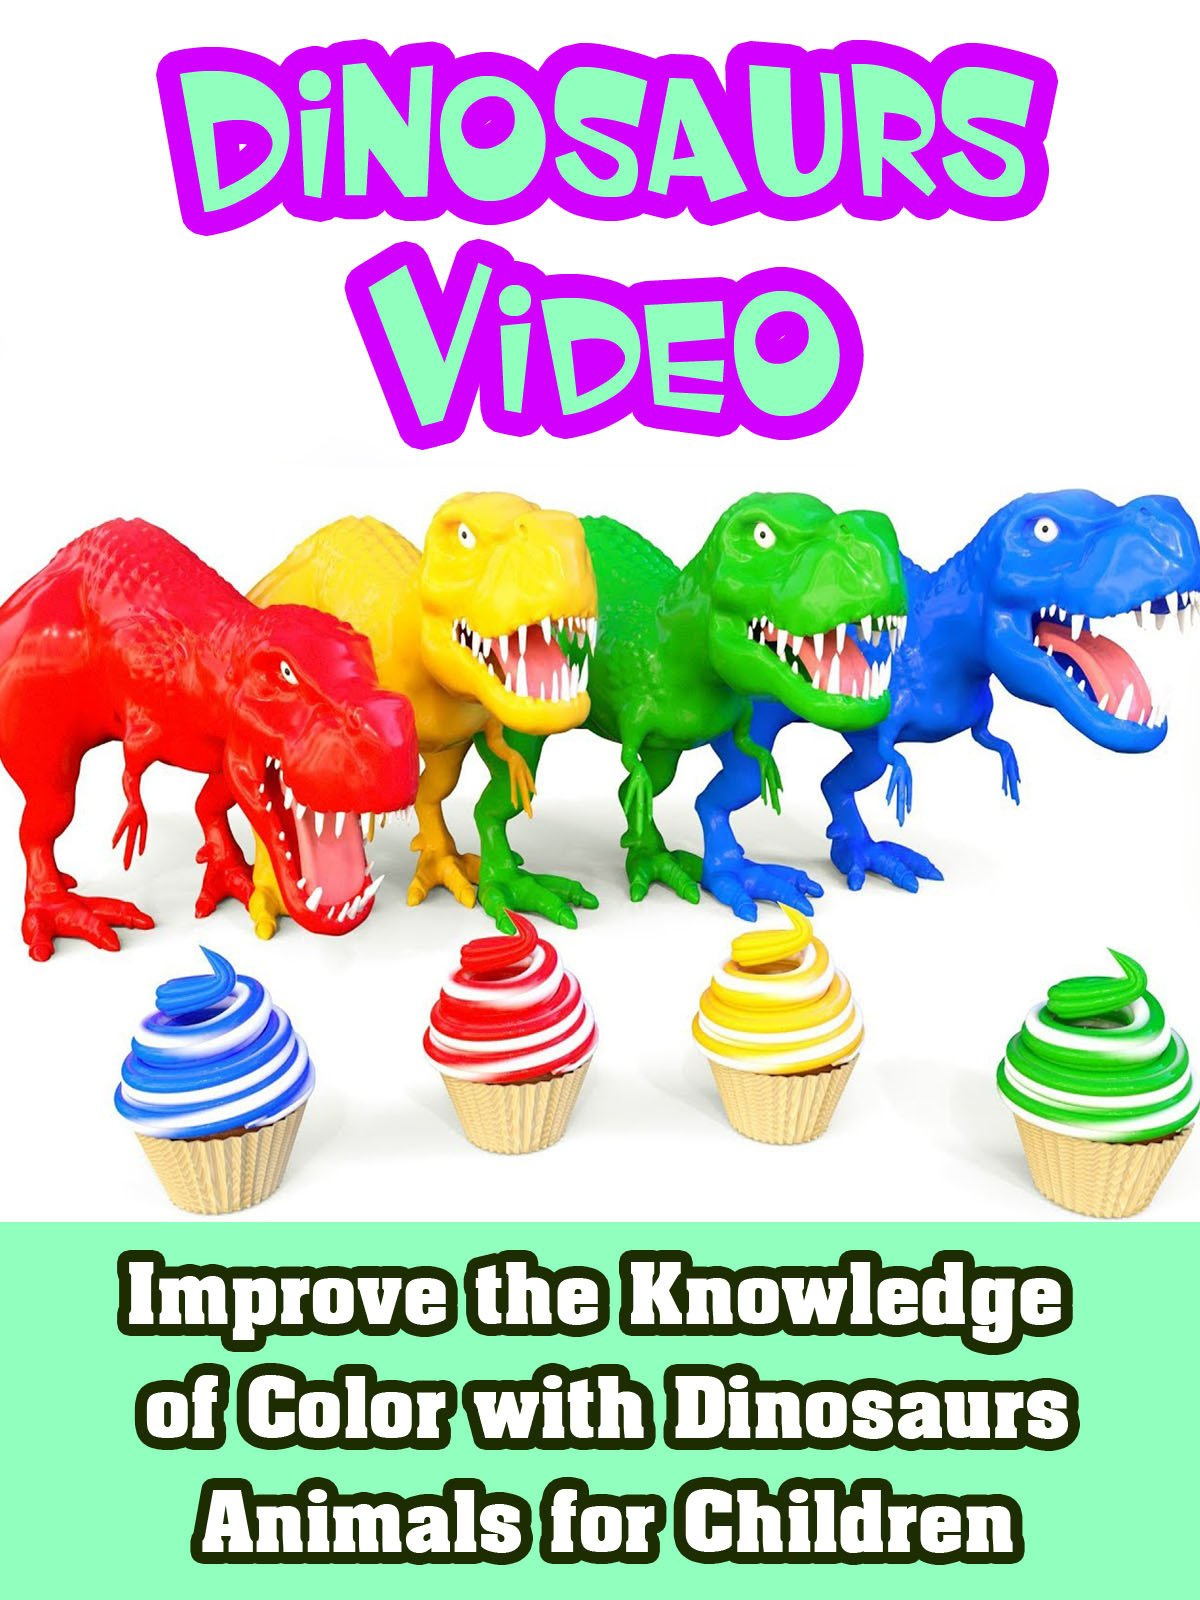 Improve the Knowledge of Color with Dinosaurs Animals for Children